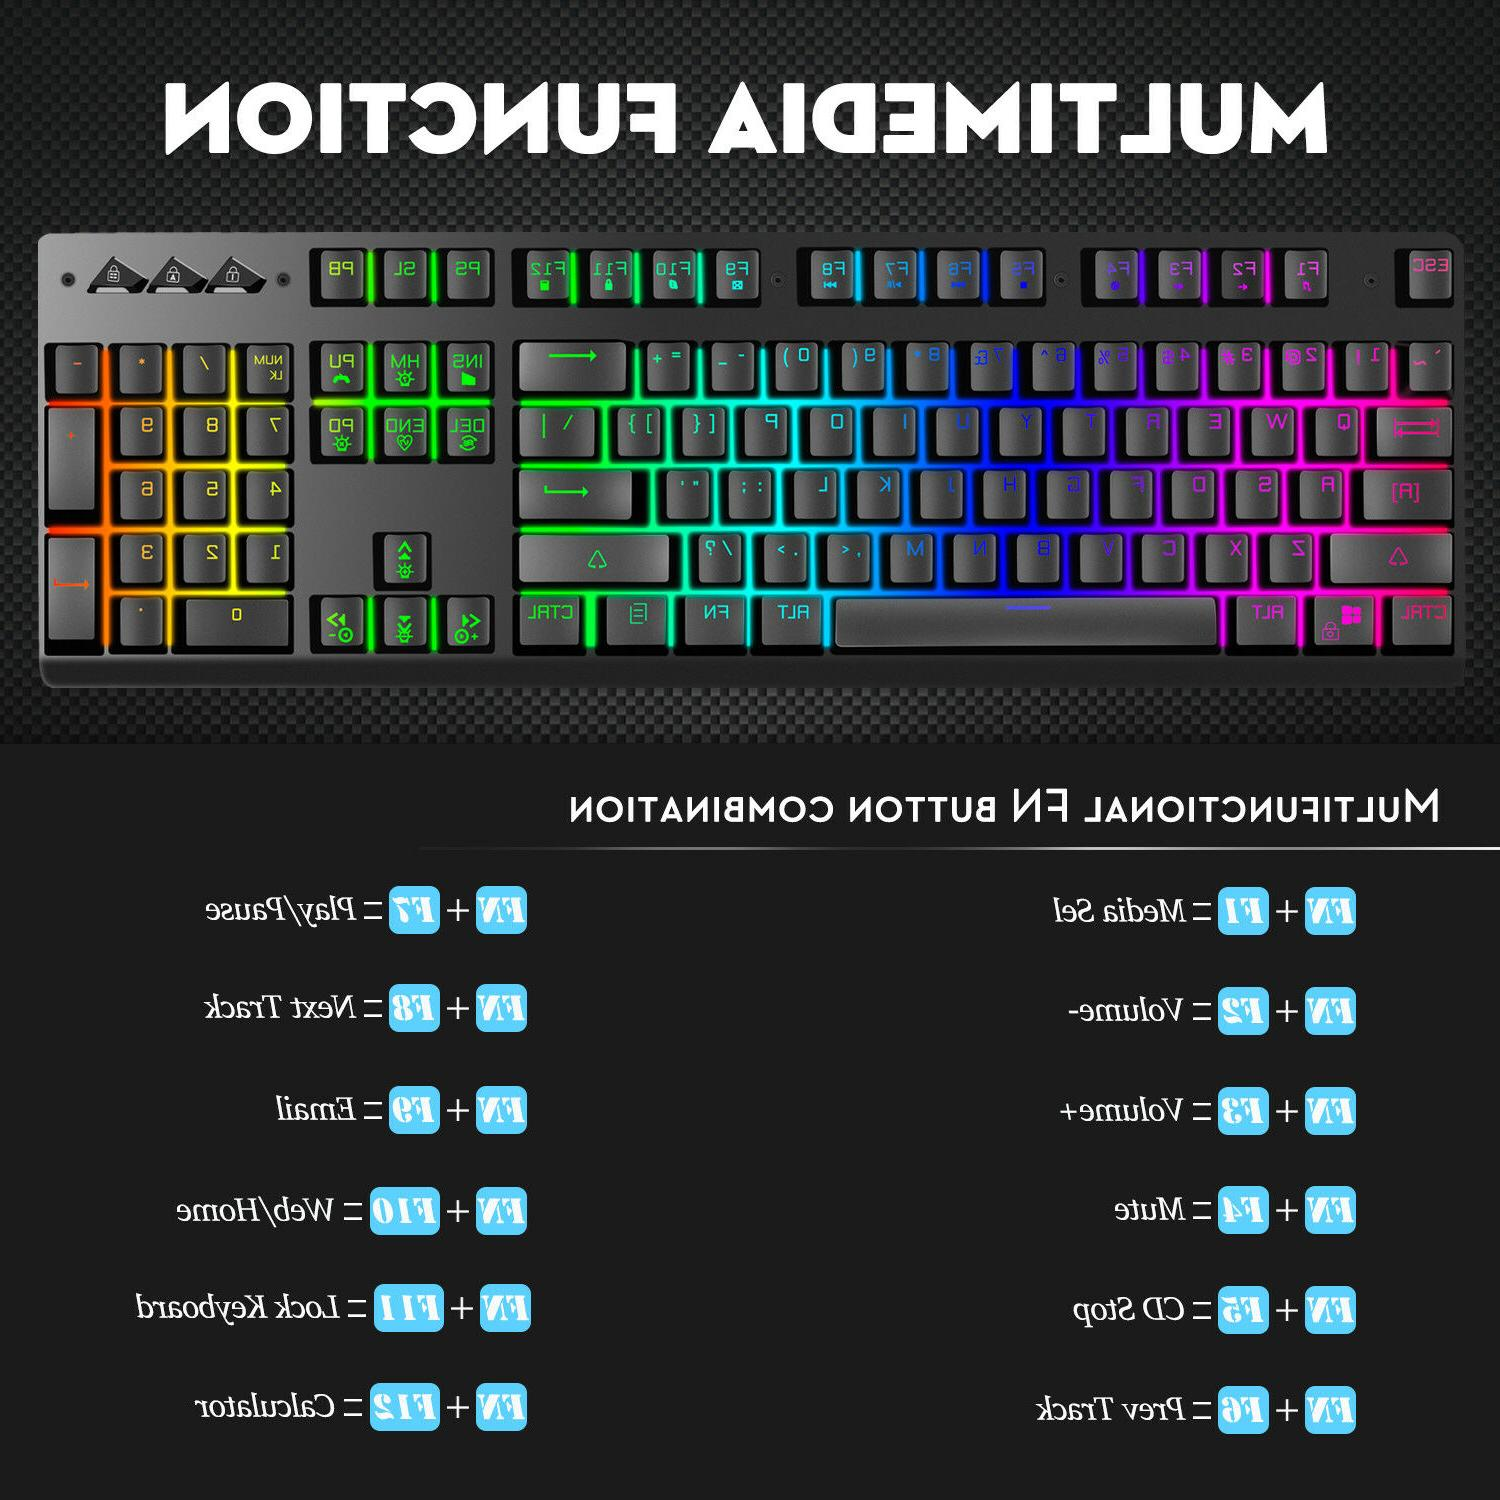 ZK-P010 Gaming Keyboard Mechanical-Similar LED Backlit RGB Rainbow USB Wired PC